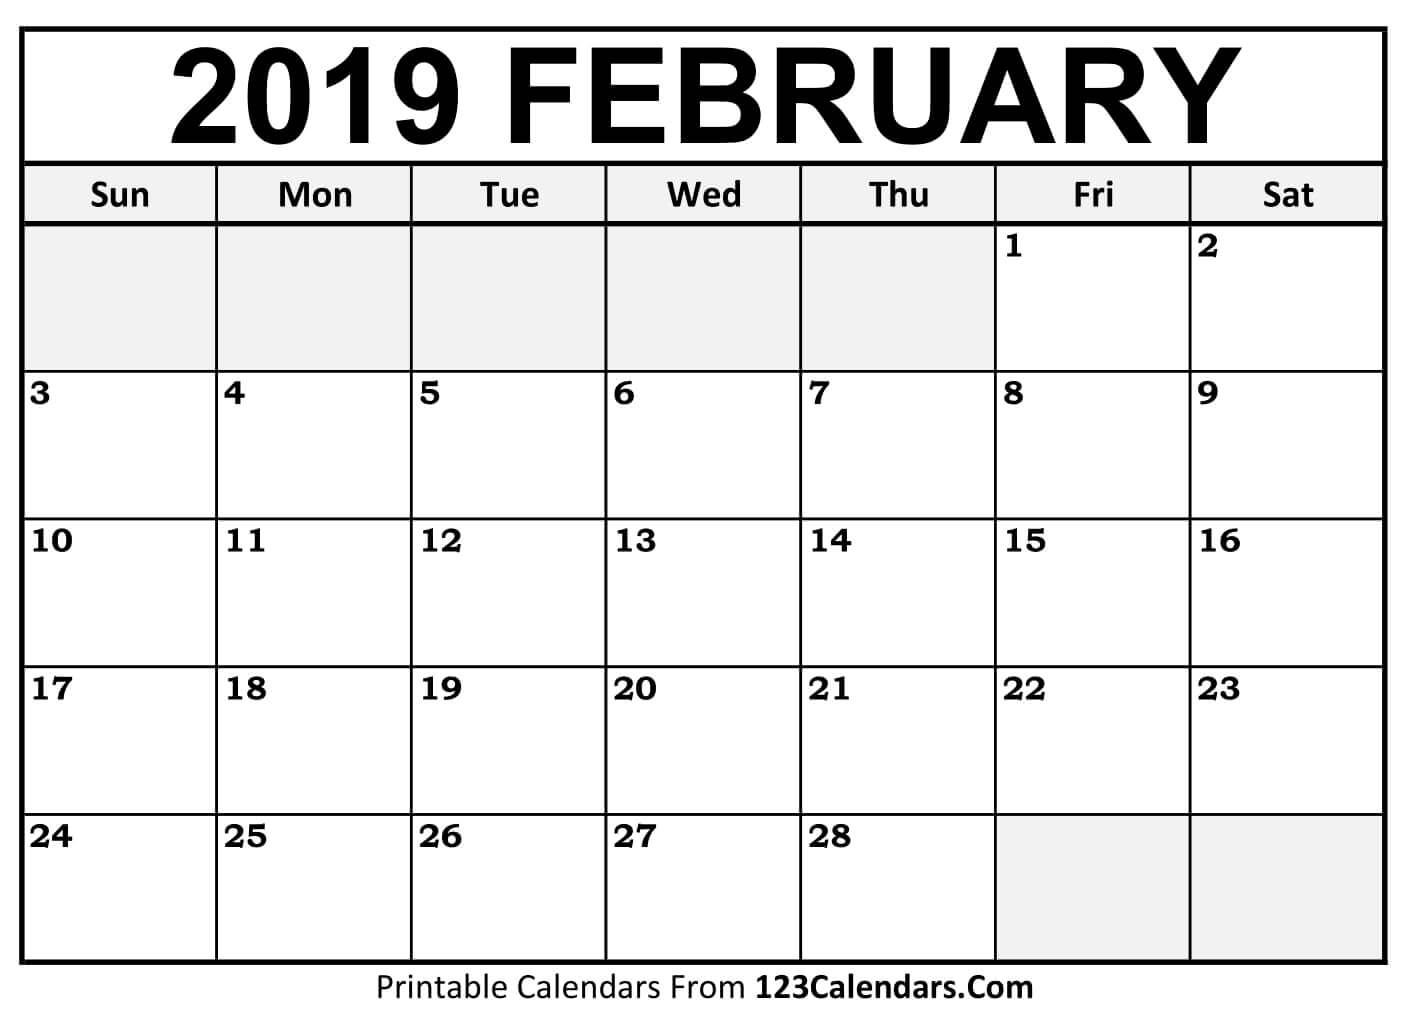 Calendar 2019 February Printable Templates - Printable Calendar 2019 intended for Blank Calendar Print-Outs Fill In With Holidays